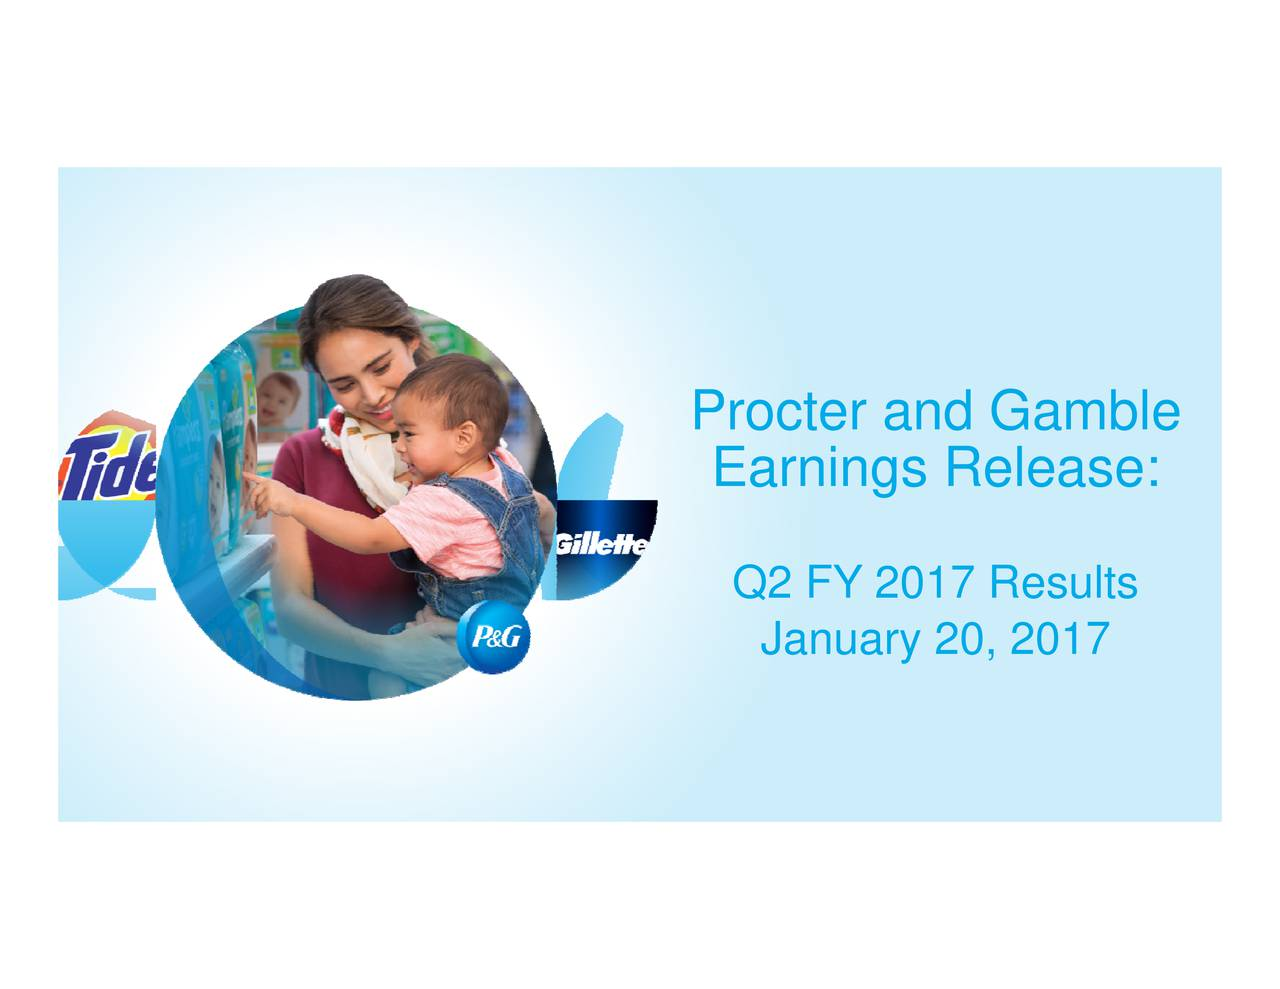 Earnings Release:esults Procter and Gamble